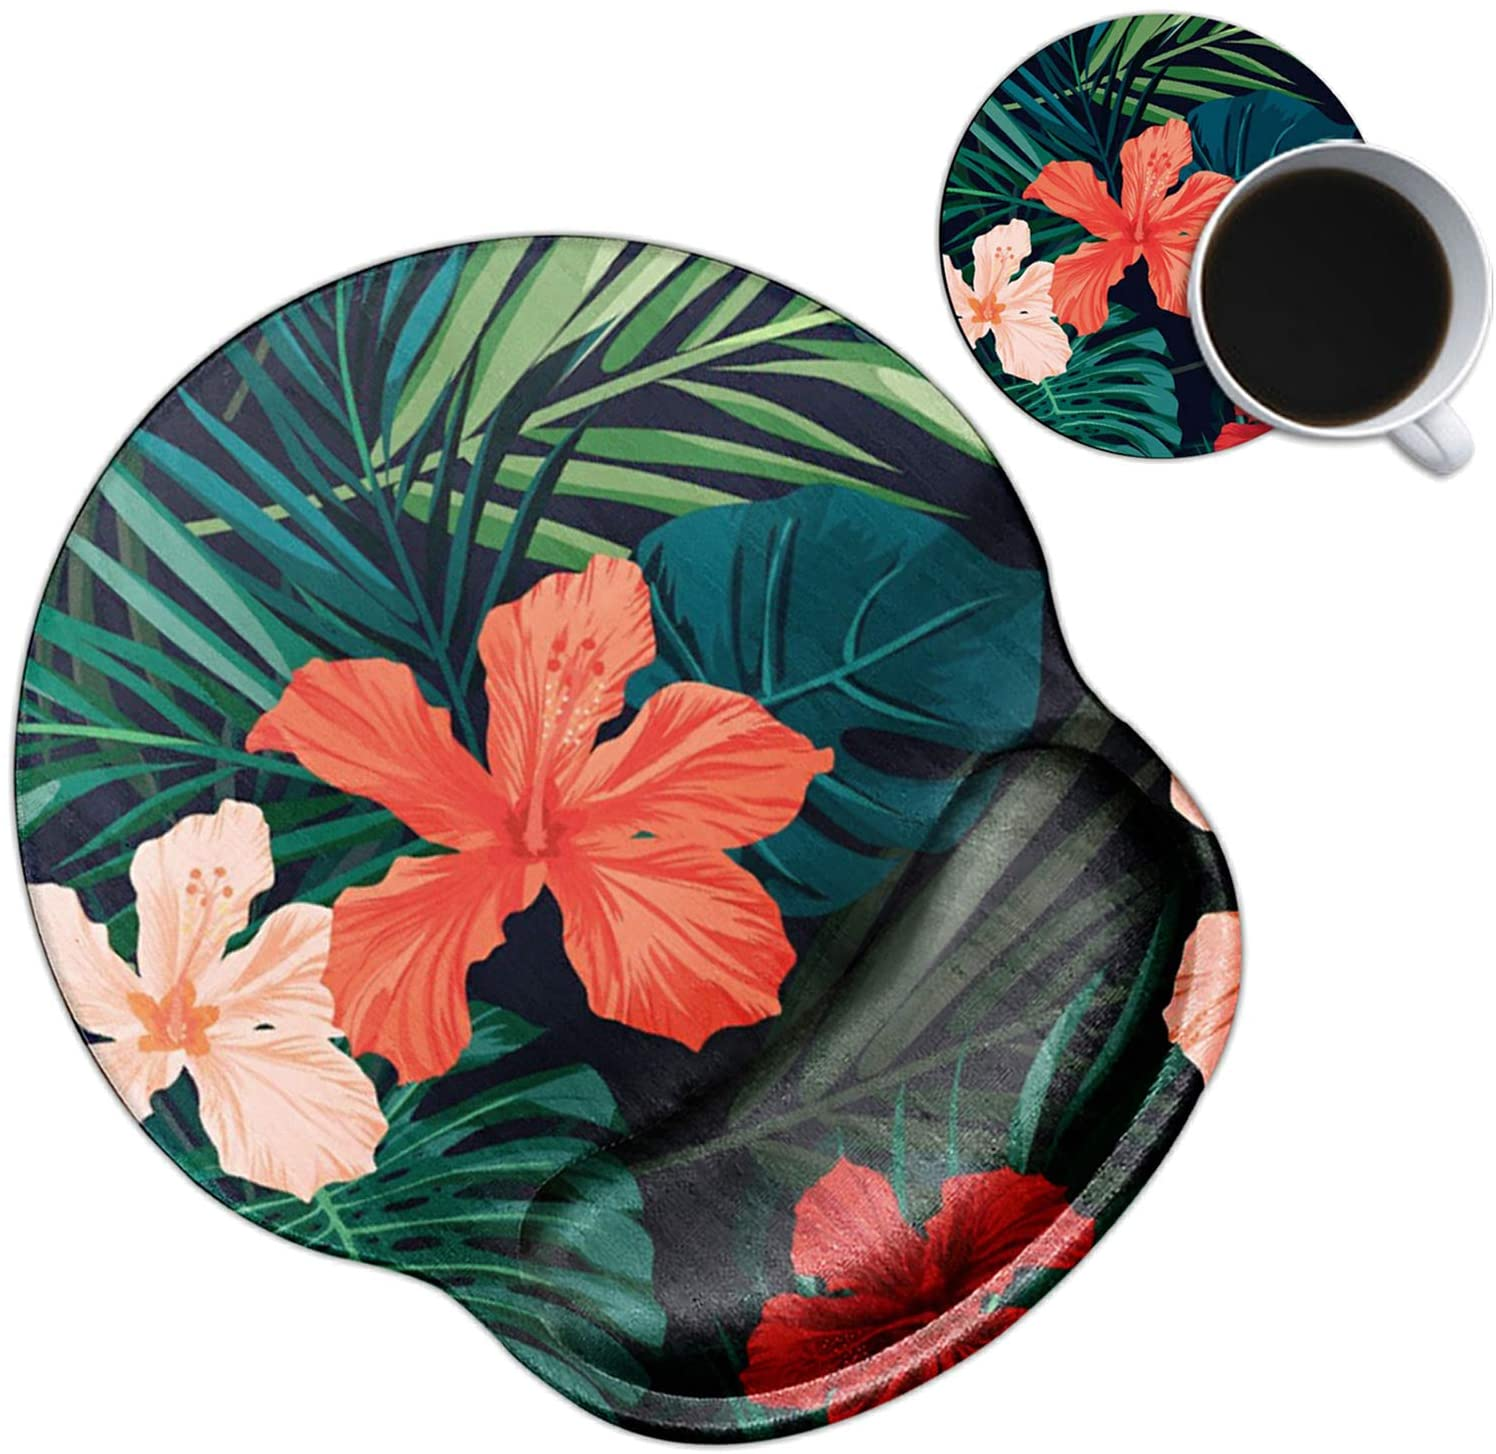 Dikoer Ergonomic Mouse Pad with Wrist Support Gel Mouse Pads with Wrist Rest, Non-Slip PU Base Mouse Mat for Laptop Internet Cafe Home Office & Cute Coasters(Tropical Flowers)